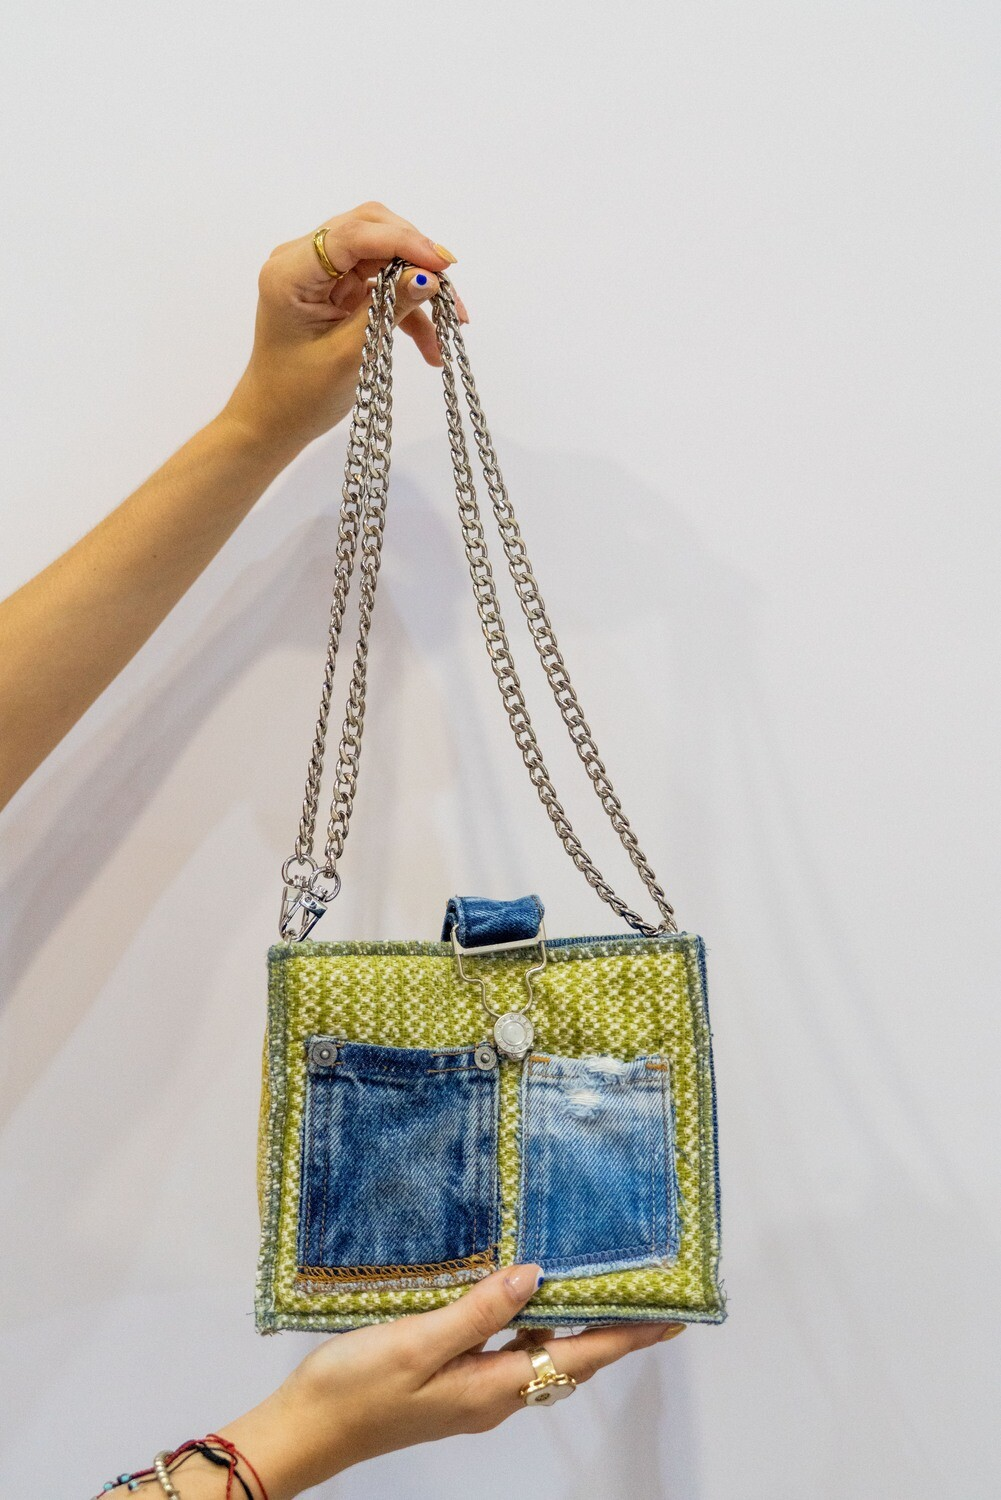 The Mini Bag (Limited Edition)